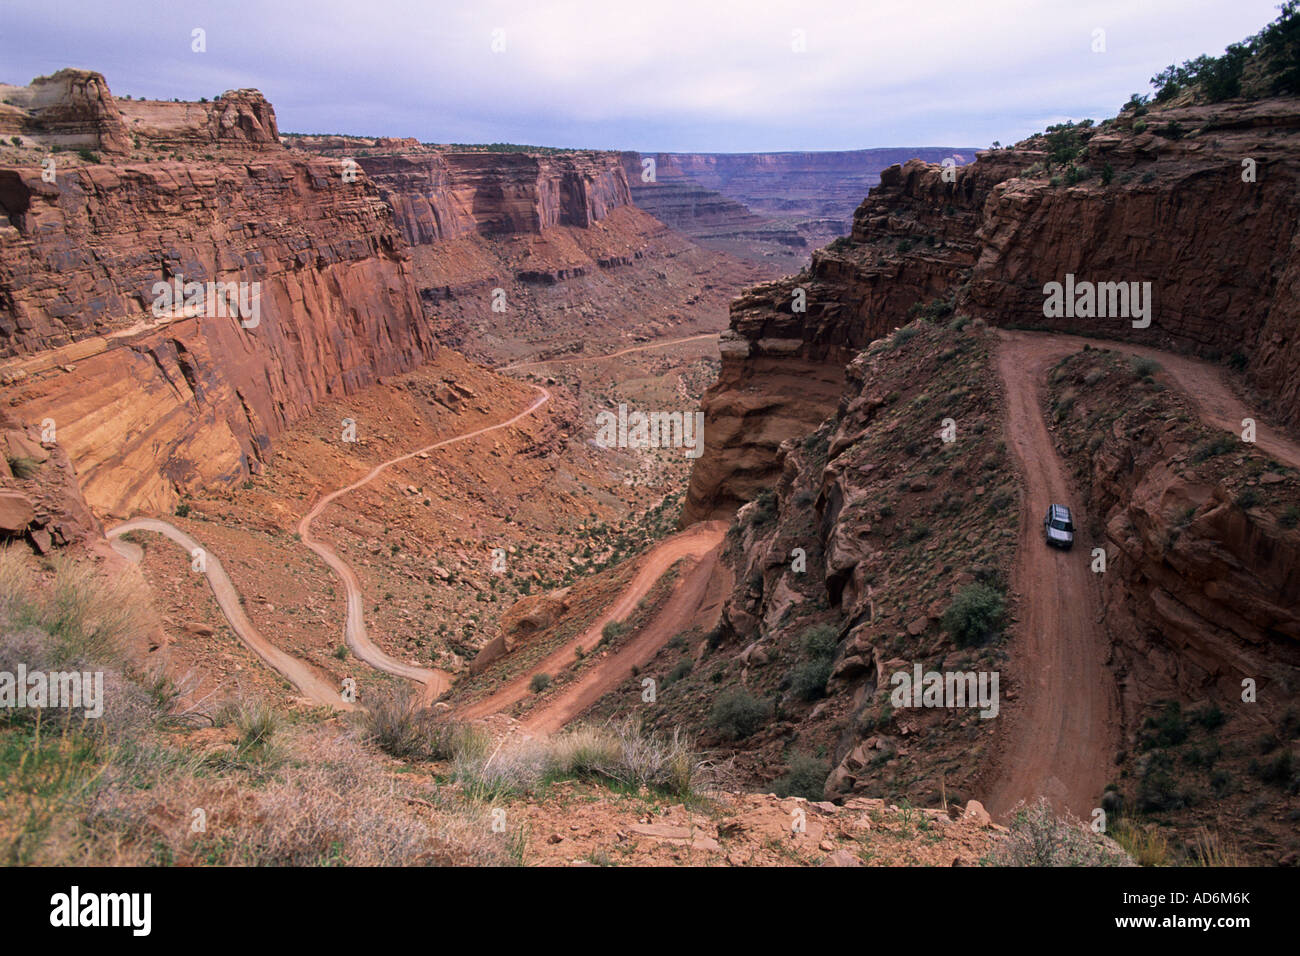 Driving on the Shafer Trail Road into Shafer Canyon Island in the Sky District Canyonlands National Park UTAH Stock Photo